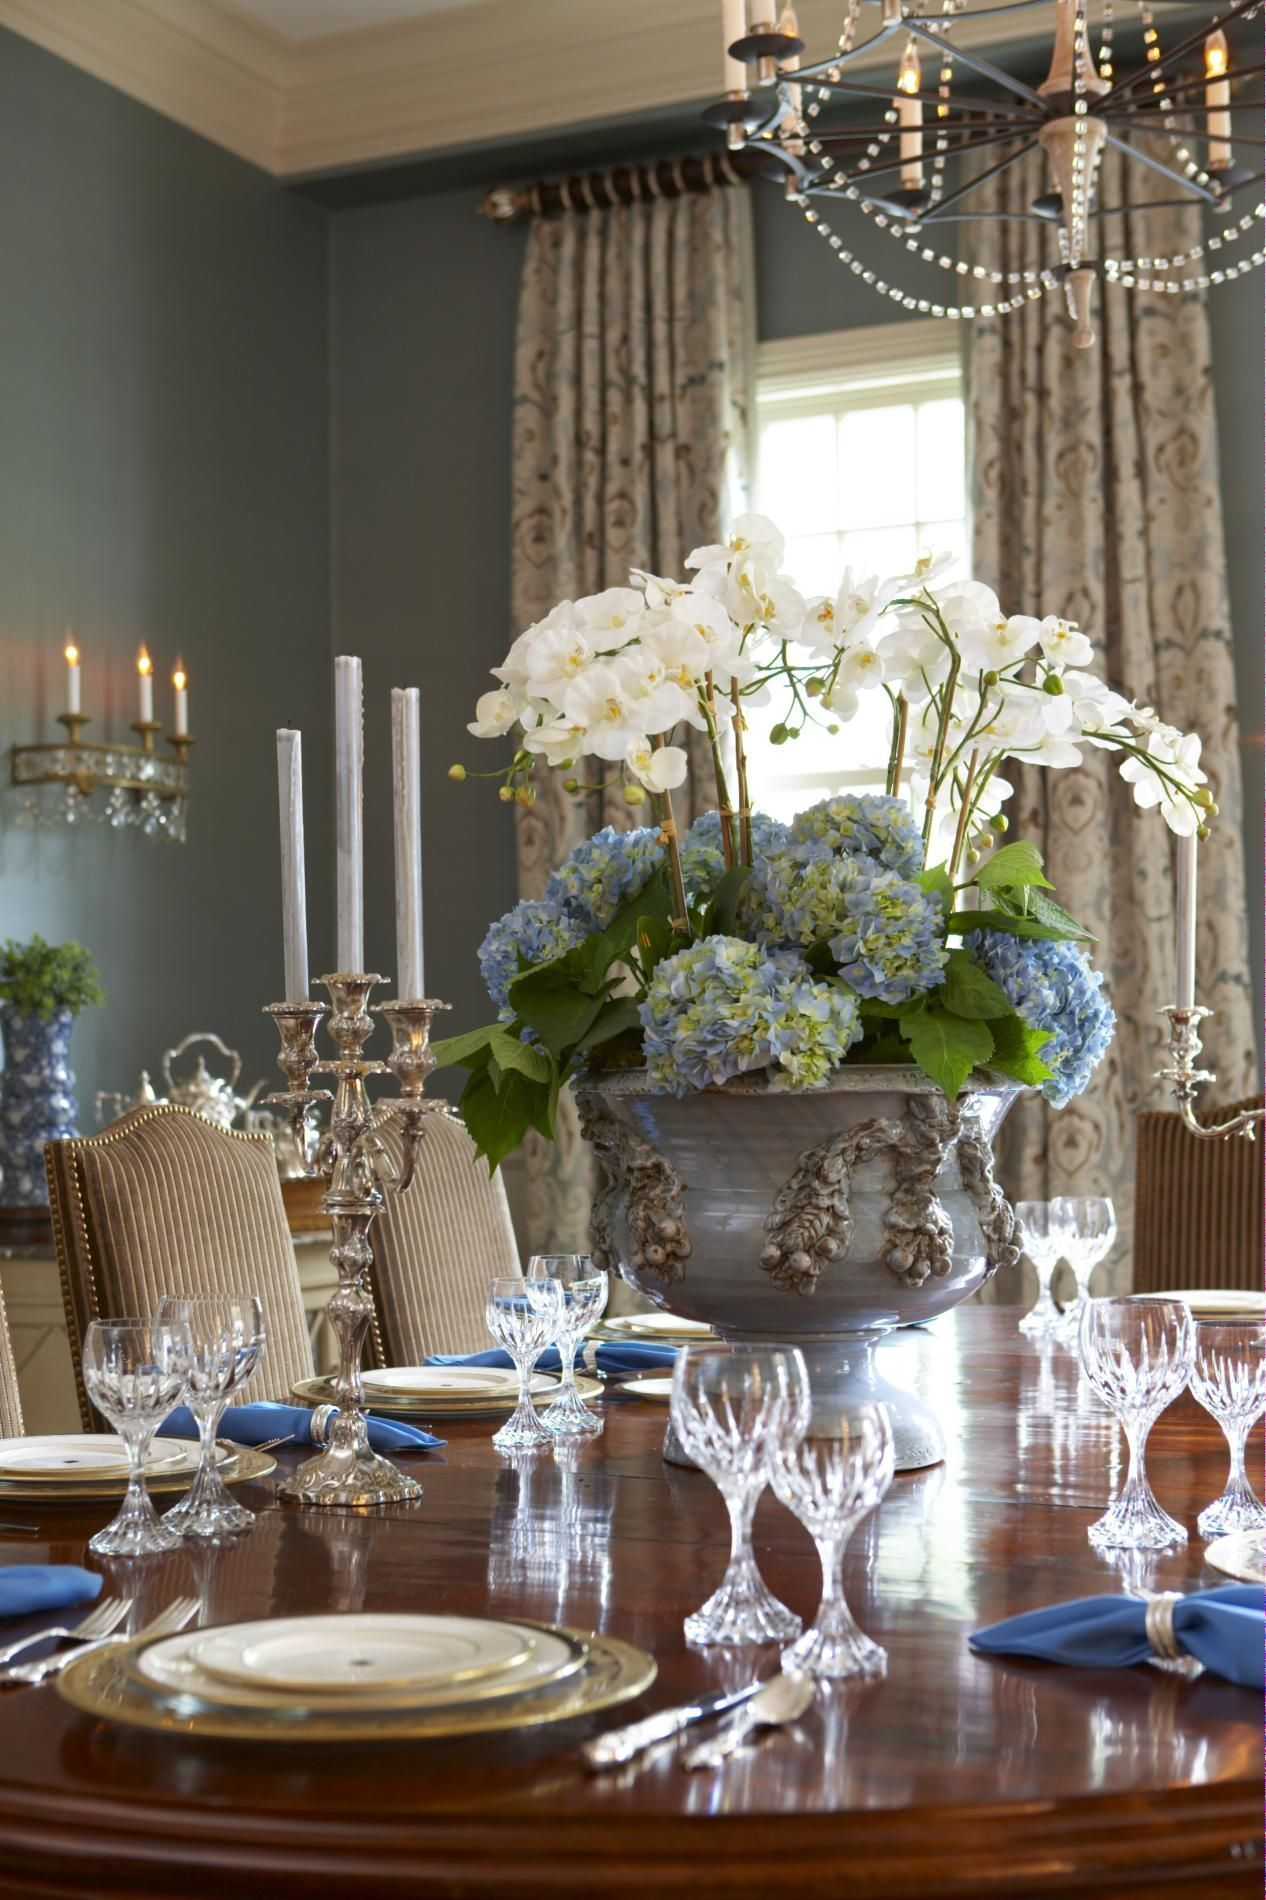 Dining Table Centerpiece Ideas Formal And Unique Dining French Country Decorating Living Room French Country Dining Room Decor Dining Room Table Centerpieces